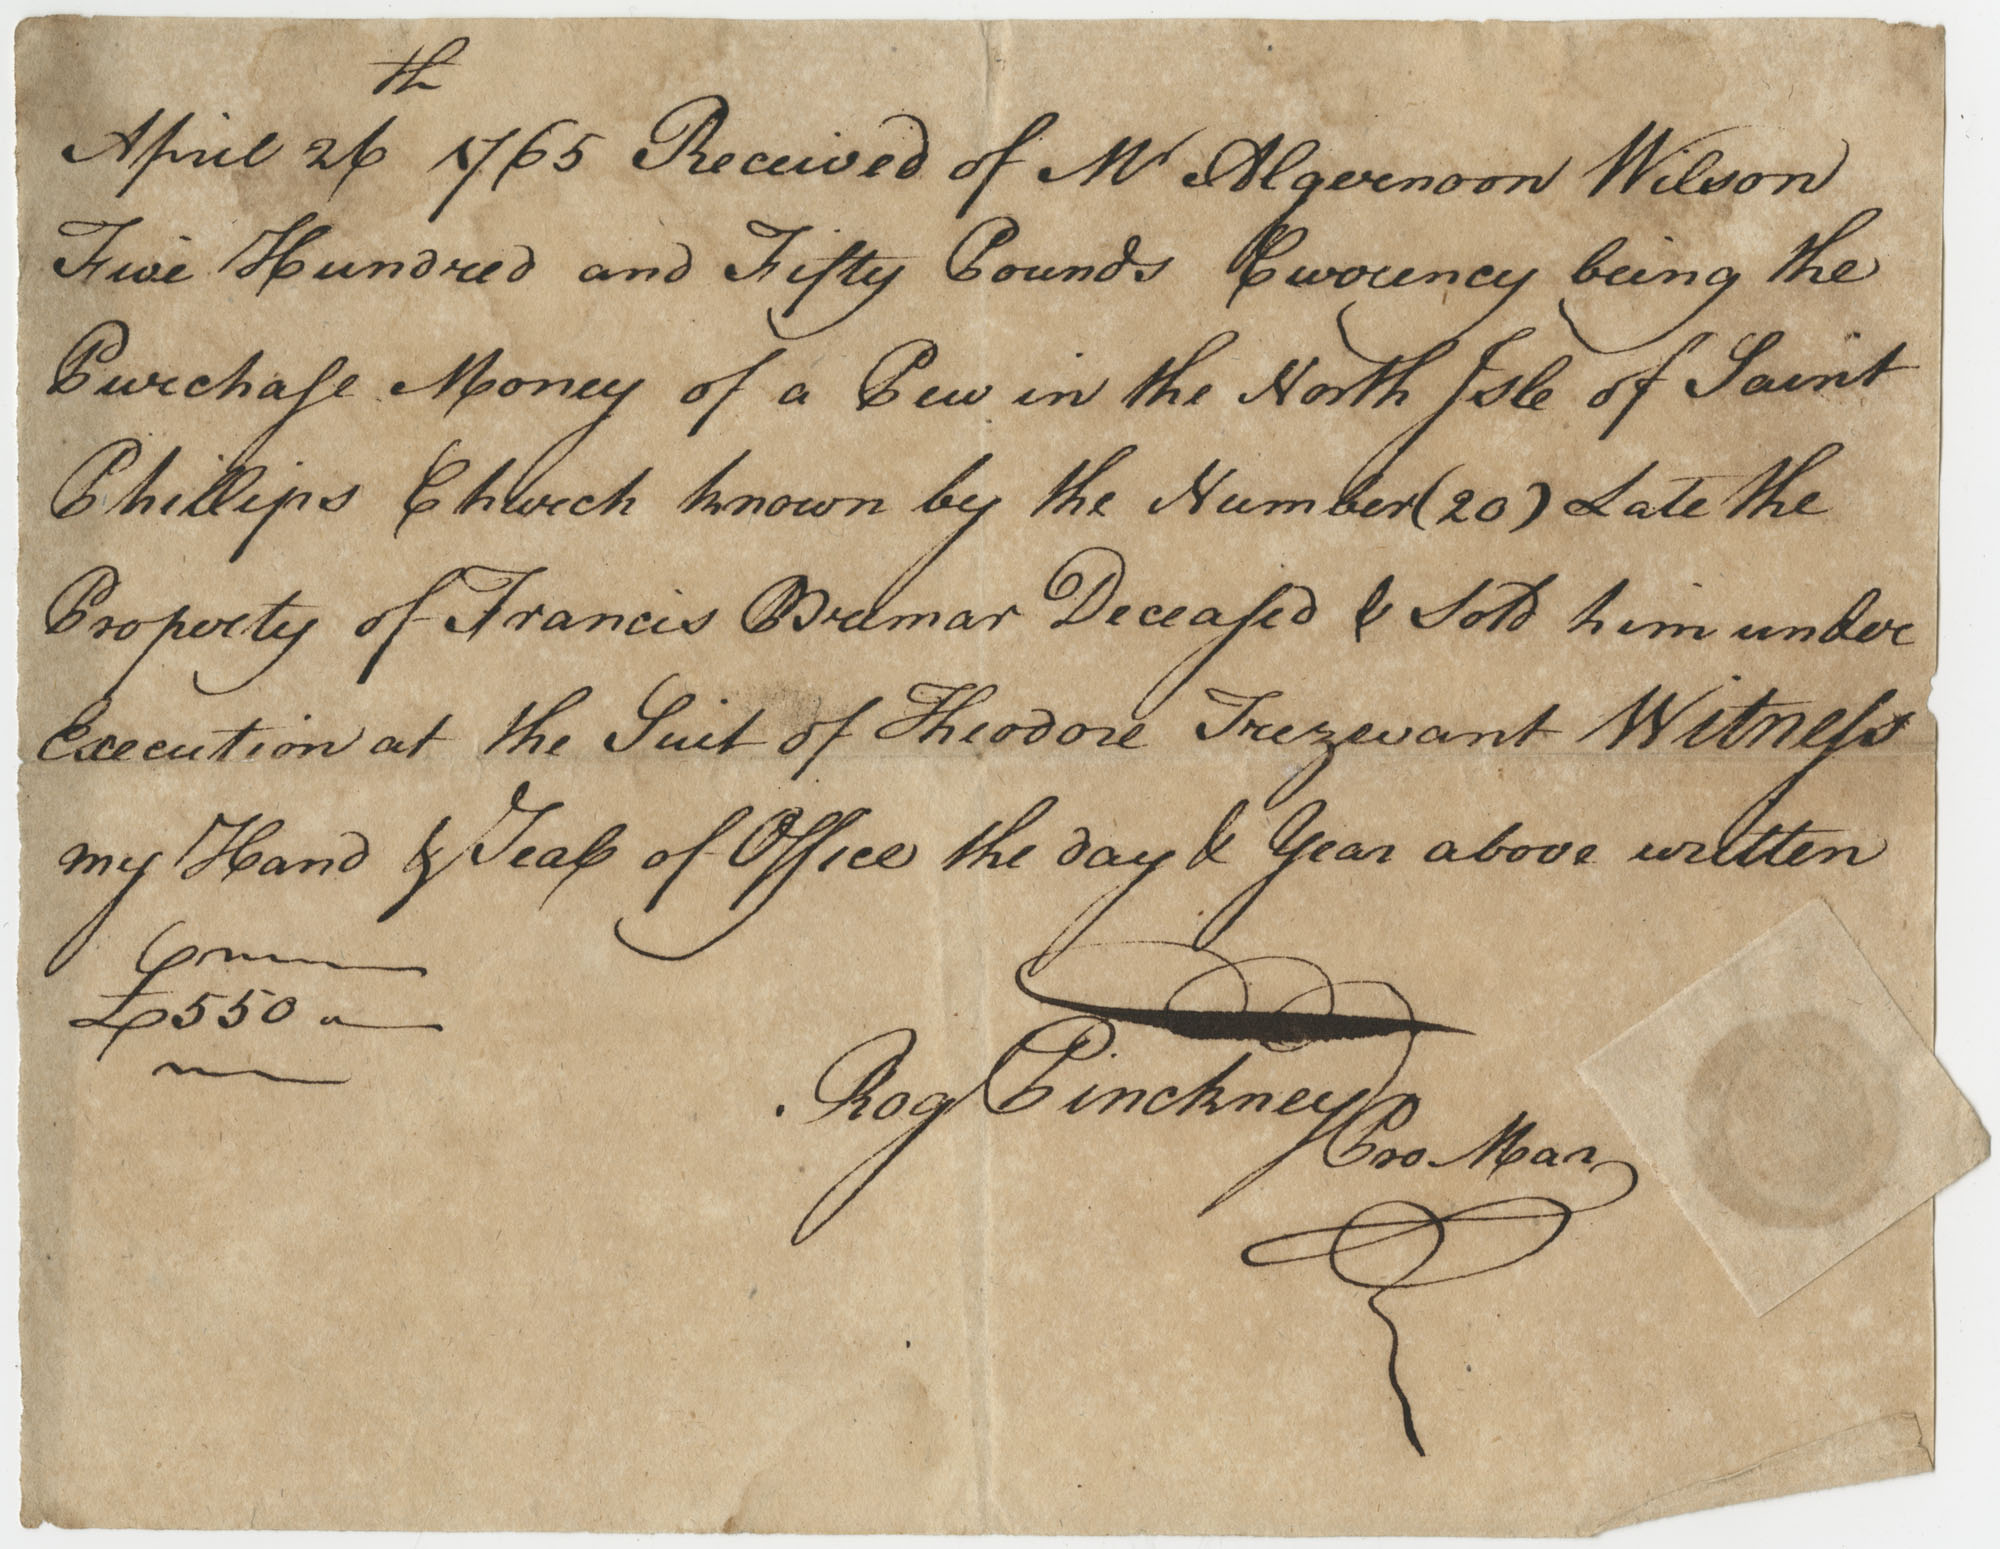 Receipt issued by Roger Pinckney for the purchase of a Pew in the North Aisle of Saint Philips Church, April 26, 1765